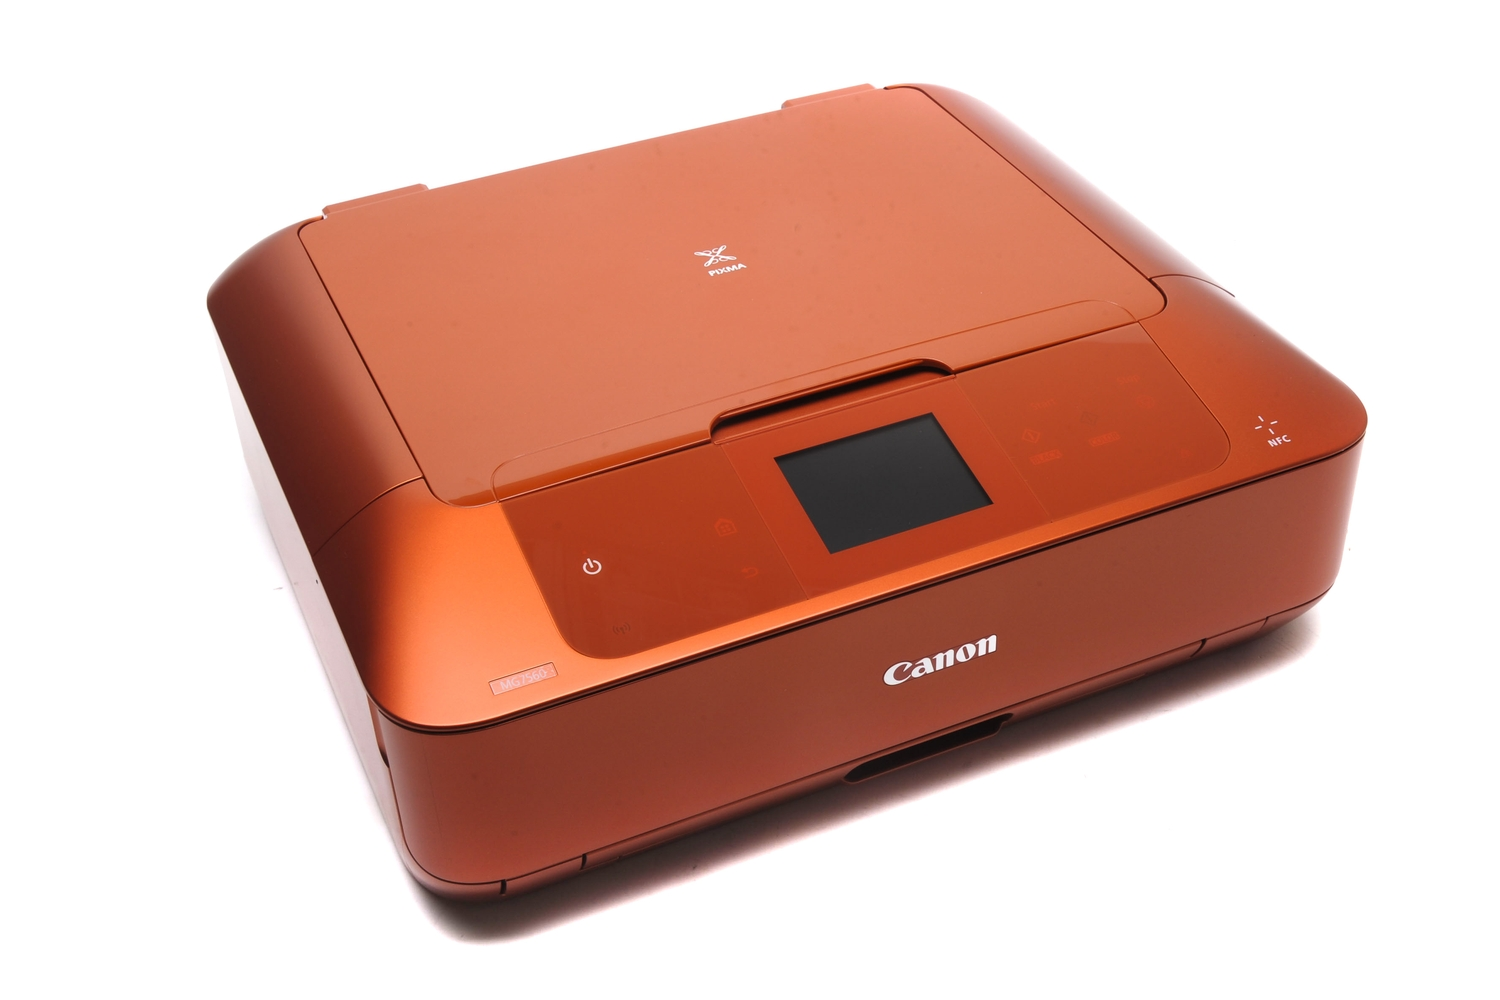 Canon All In One Canon Pixma Mg7560 All In One Cloud Printer Review An